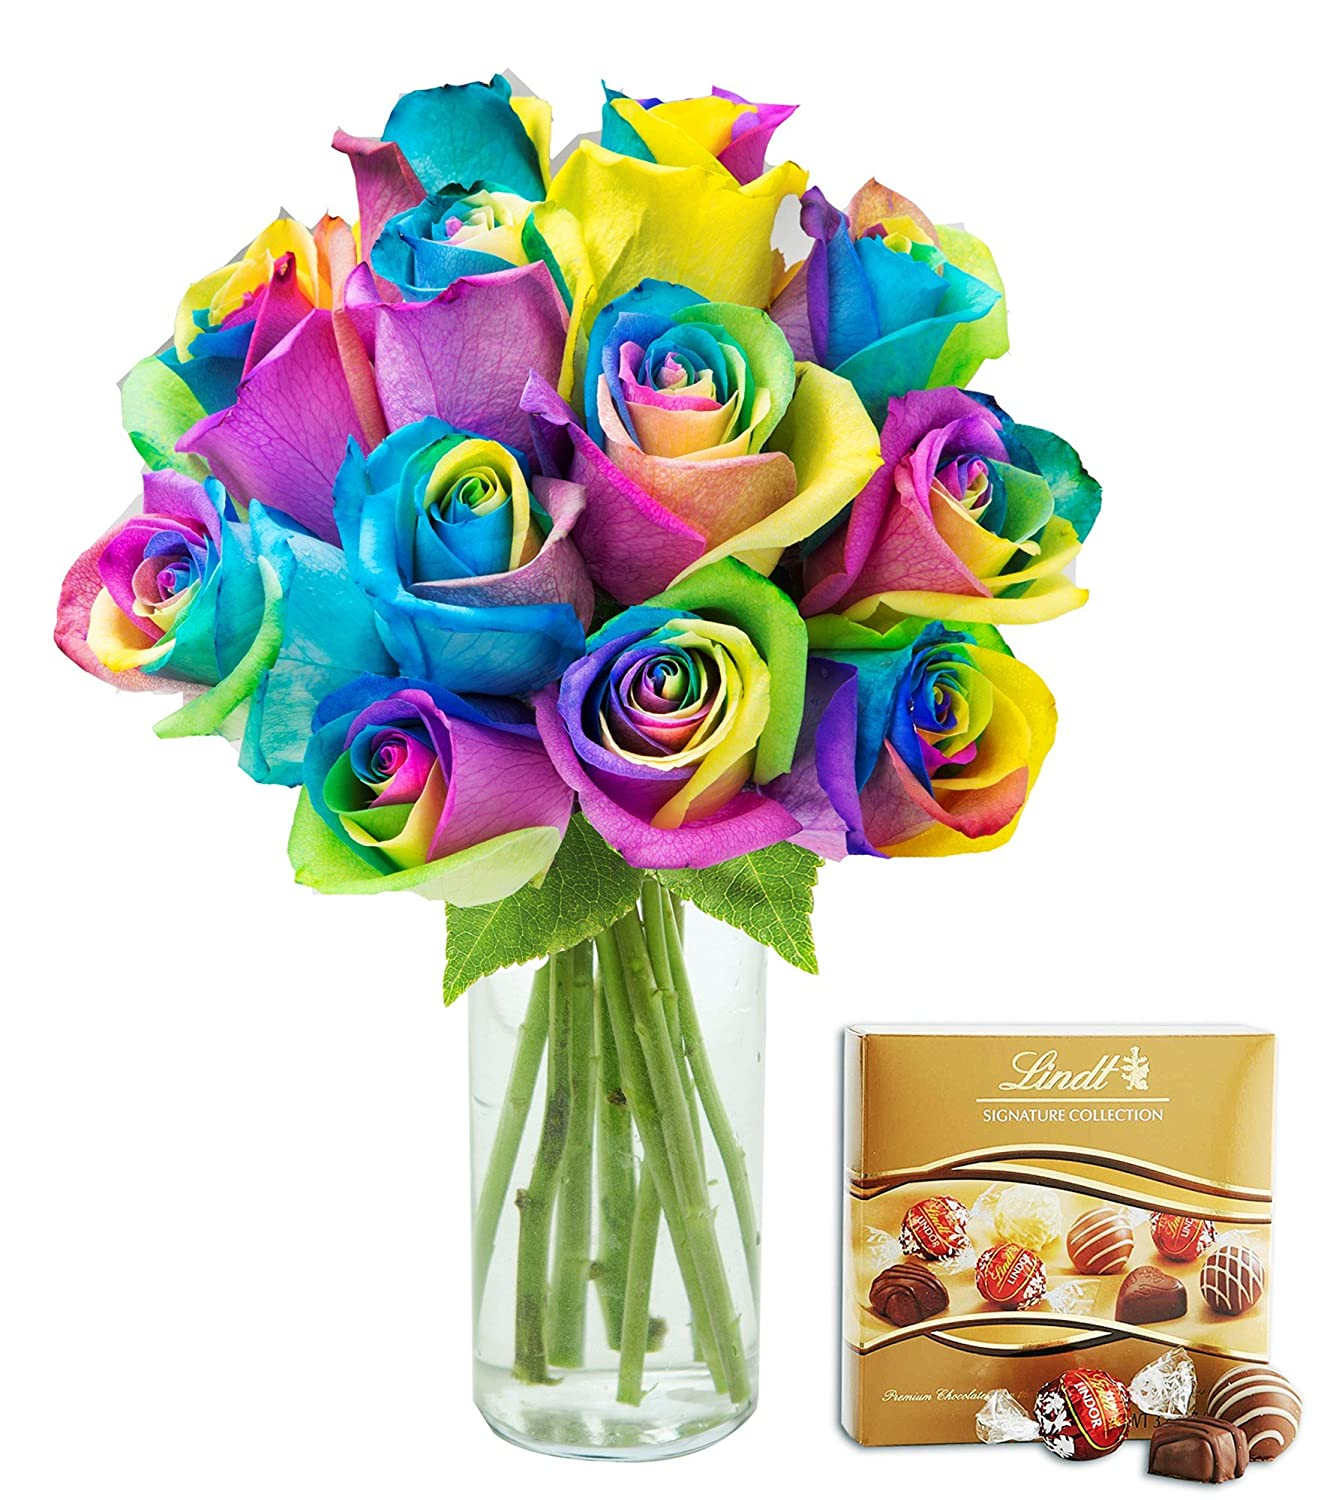 Amazon.com : KaBloom Bouquet of Fresh Cut Rainbow Roses: 12 Rainbow ...